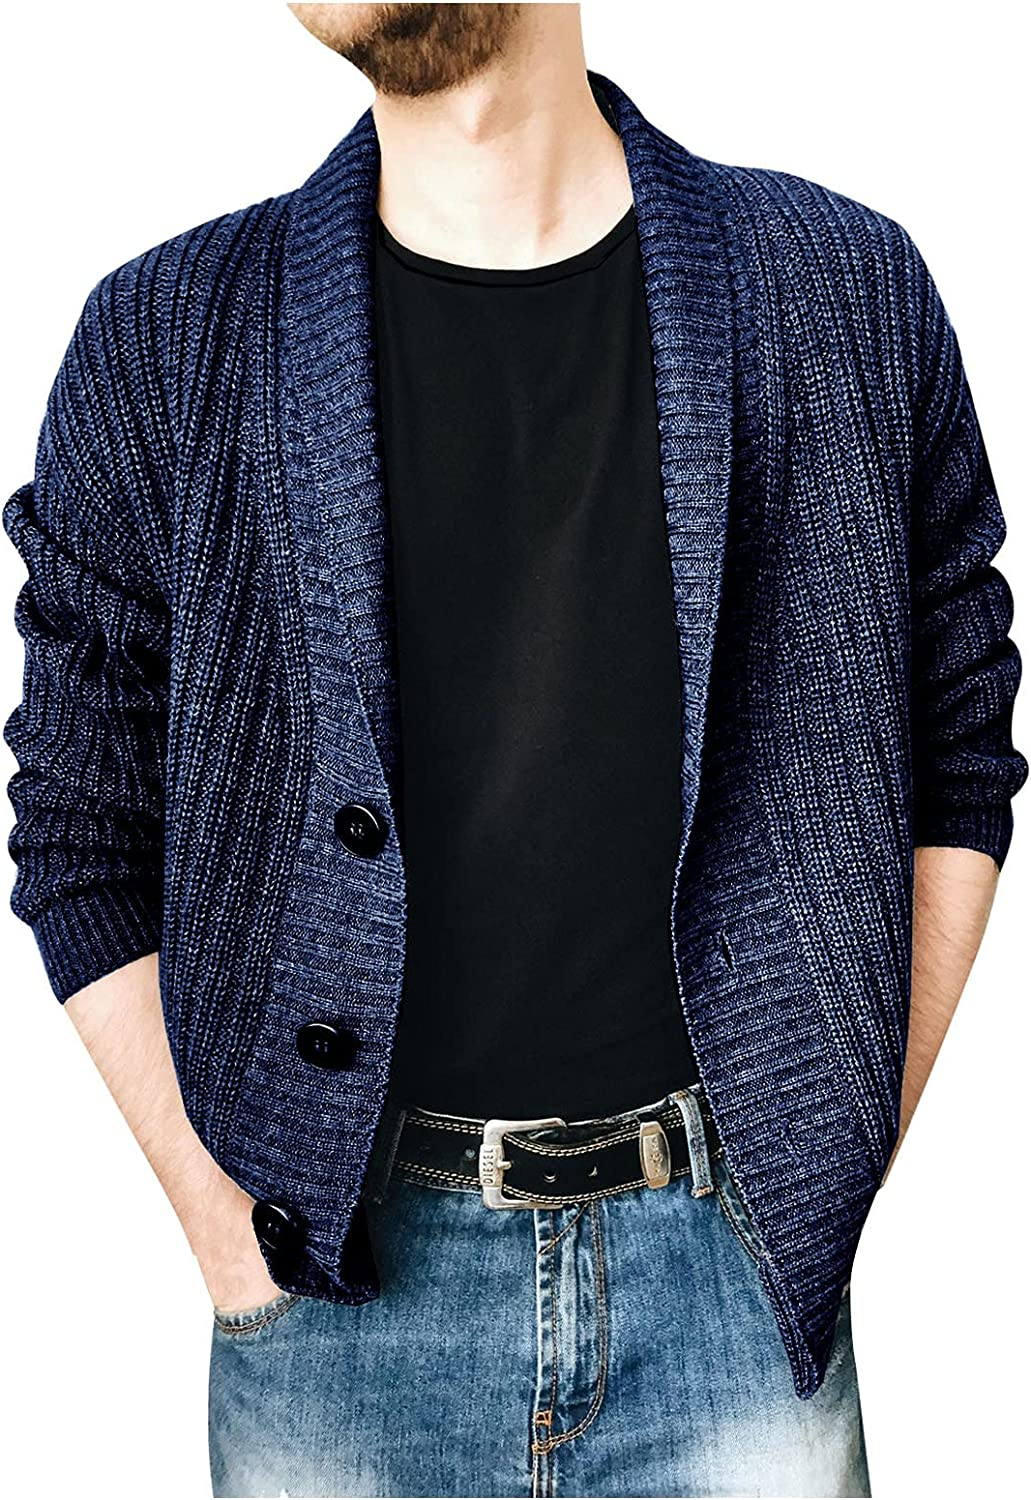 HONGJ Knit Cardigan Sweater for Mens, Fall Winter Lapel Single-breasted Button Coat Open Front Casual Slim Outerwear